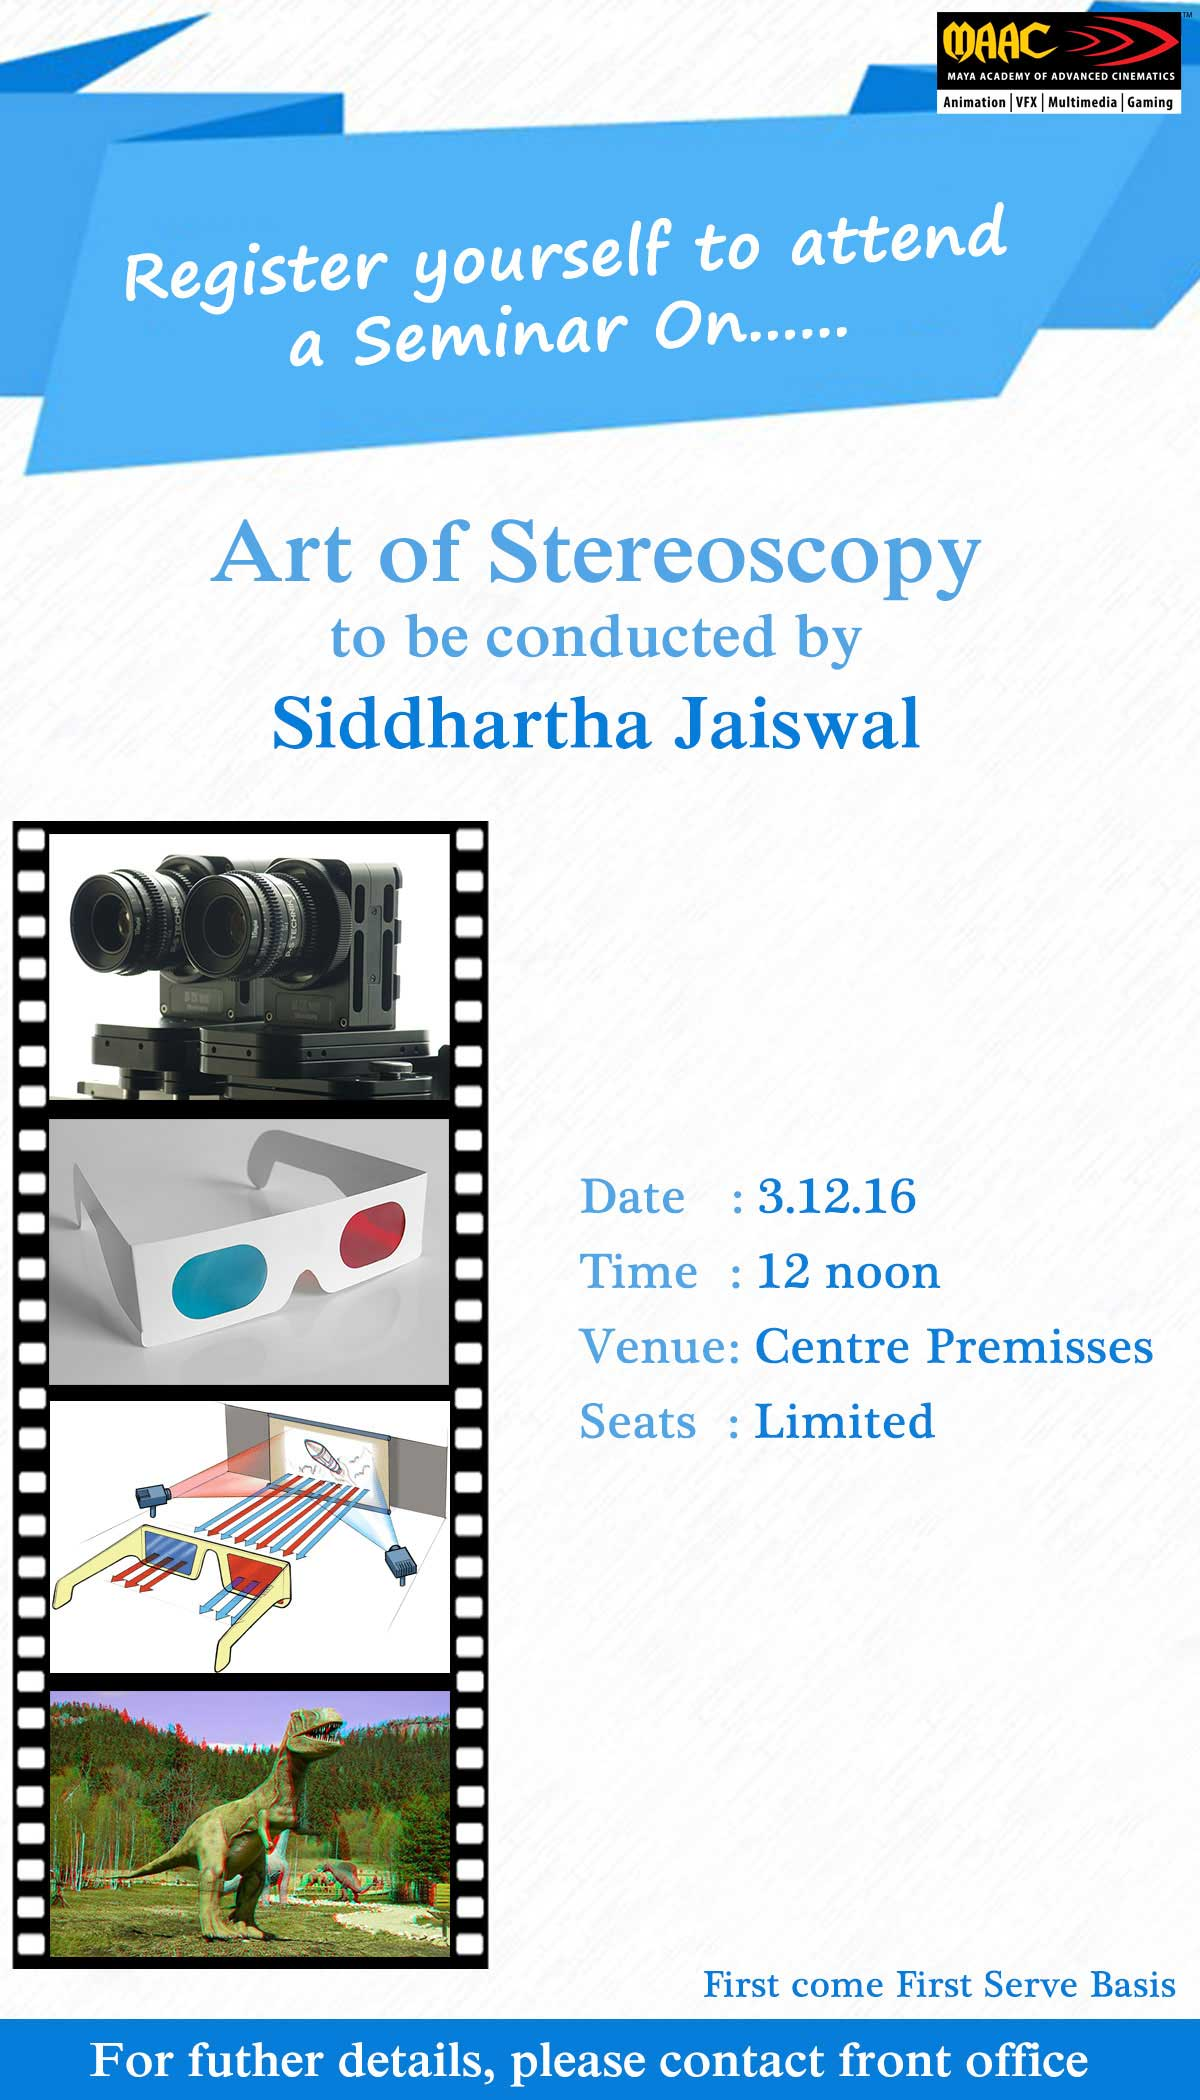 Weekly Master Class on Art of Stereoscopy - Siddhartha Jaiswal